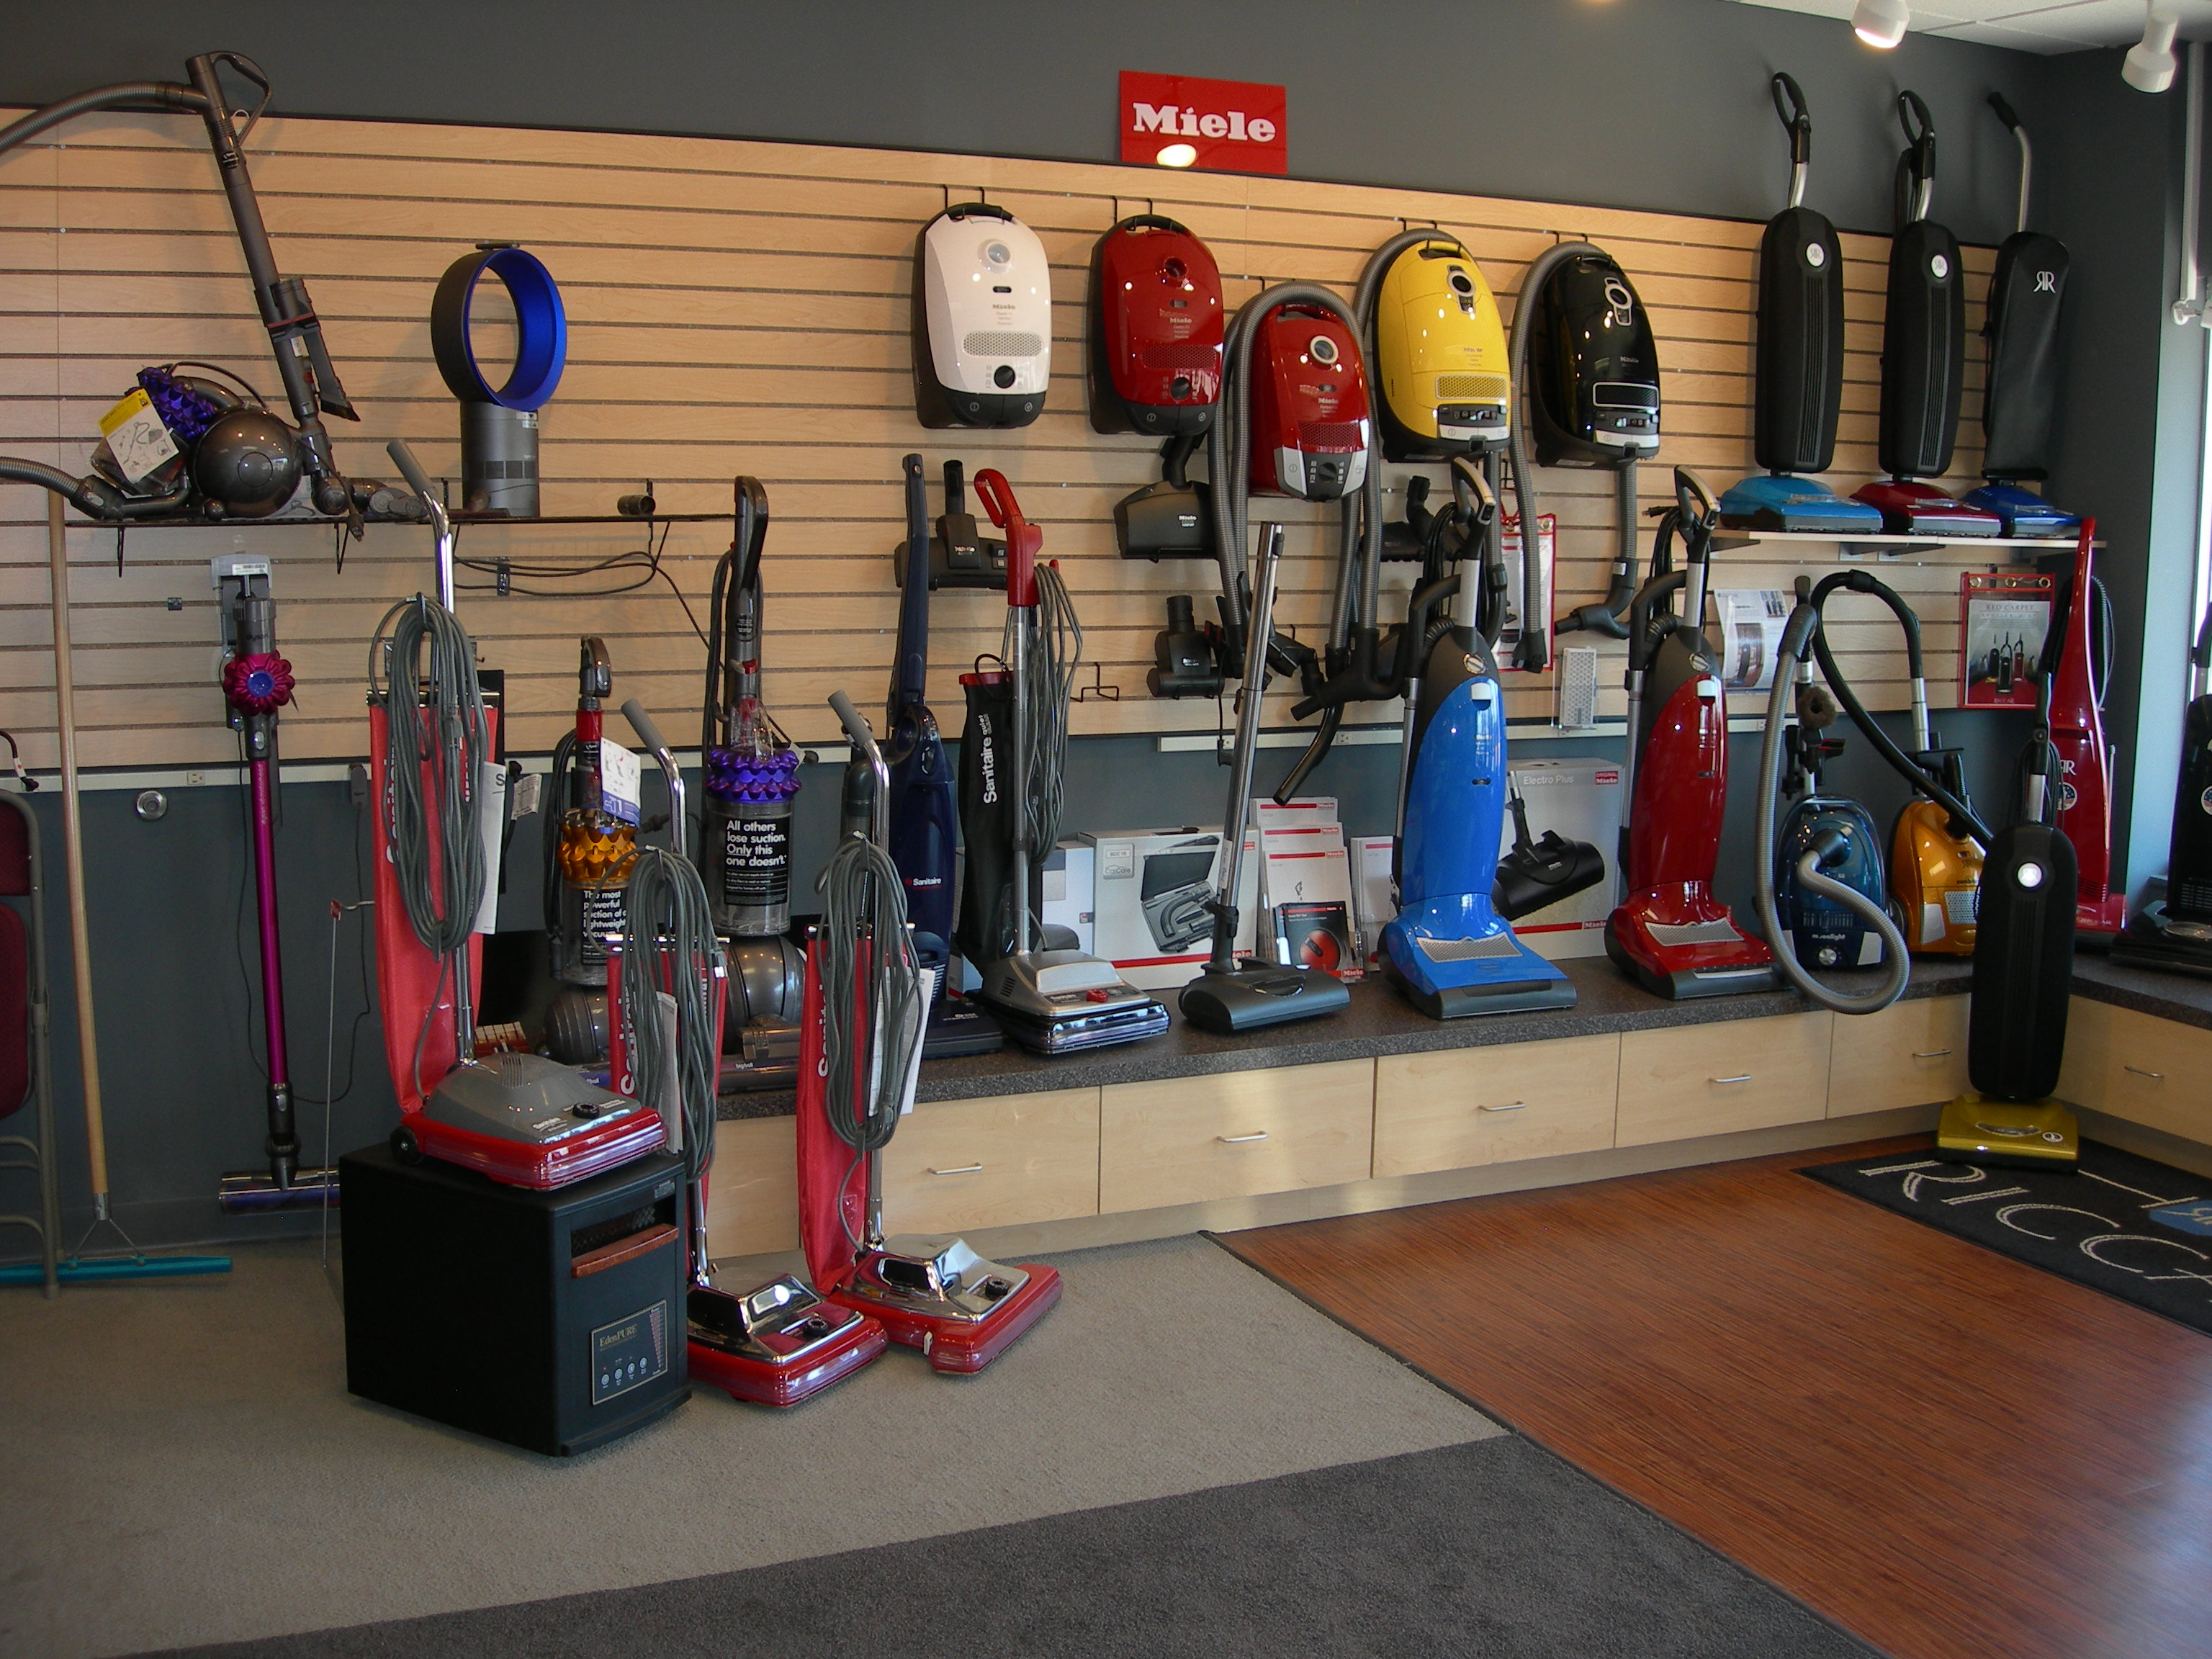 A-1 Vacuum Cleaner Company image 4